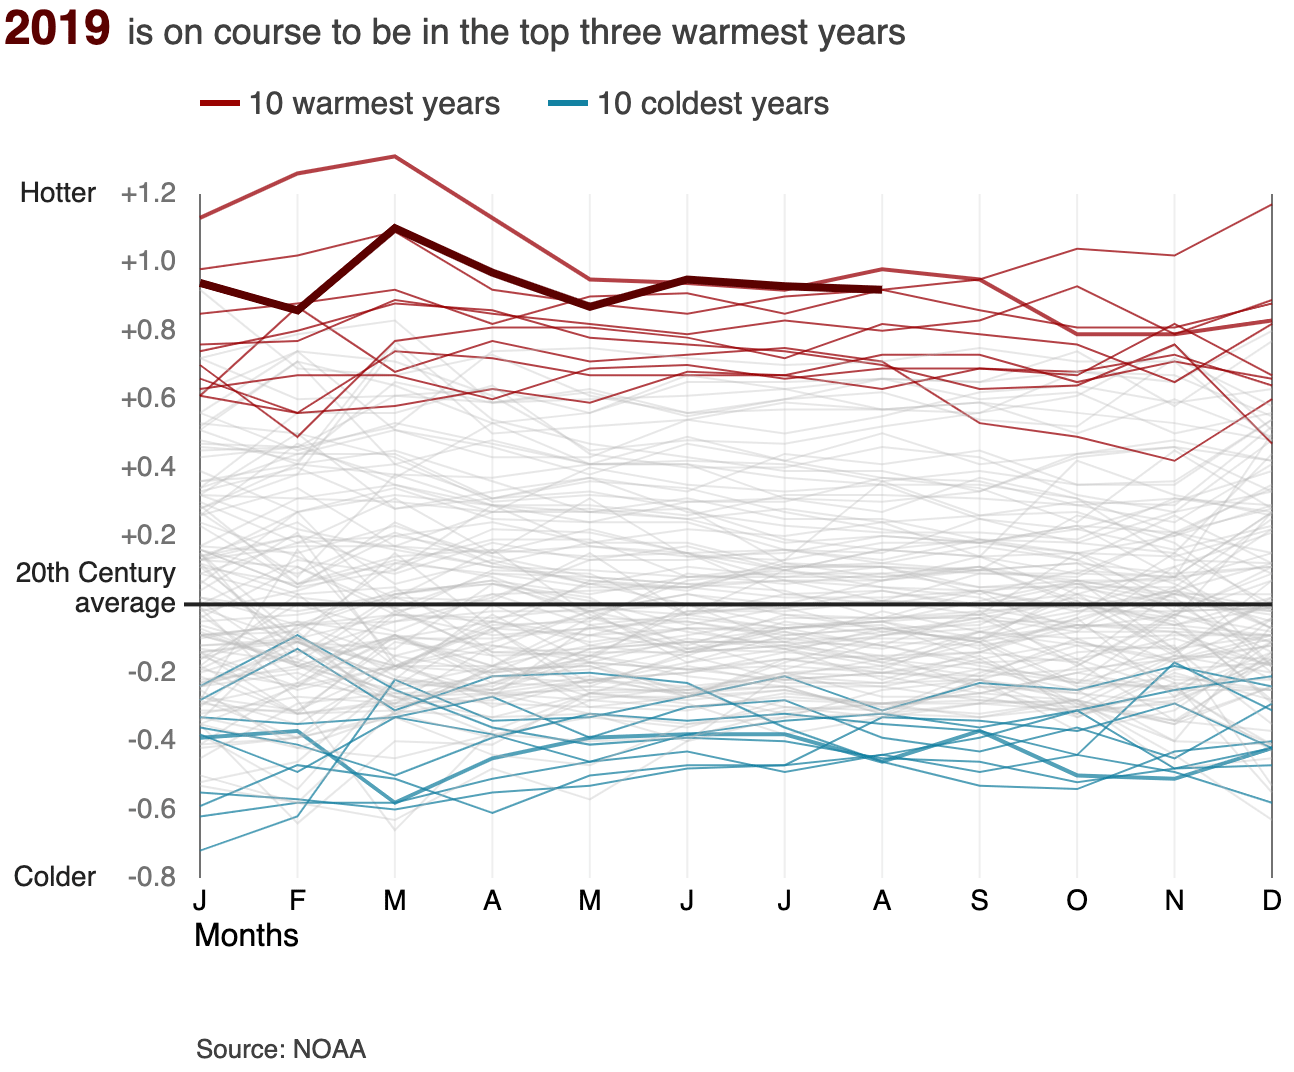 NEWS Animated chart showing that most of the coldest 10 years compared to the 20th century average were in the early 1900s, while the warmest years have all been since 2000, with 2018 on course to be the fourth warmest year on record